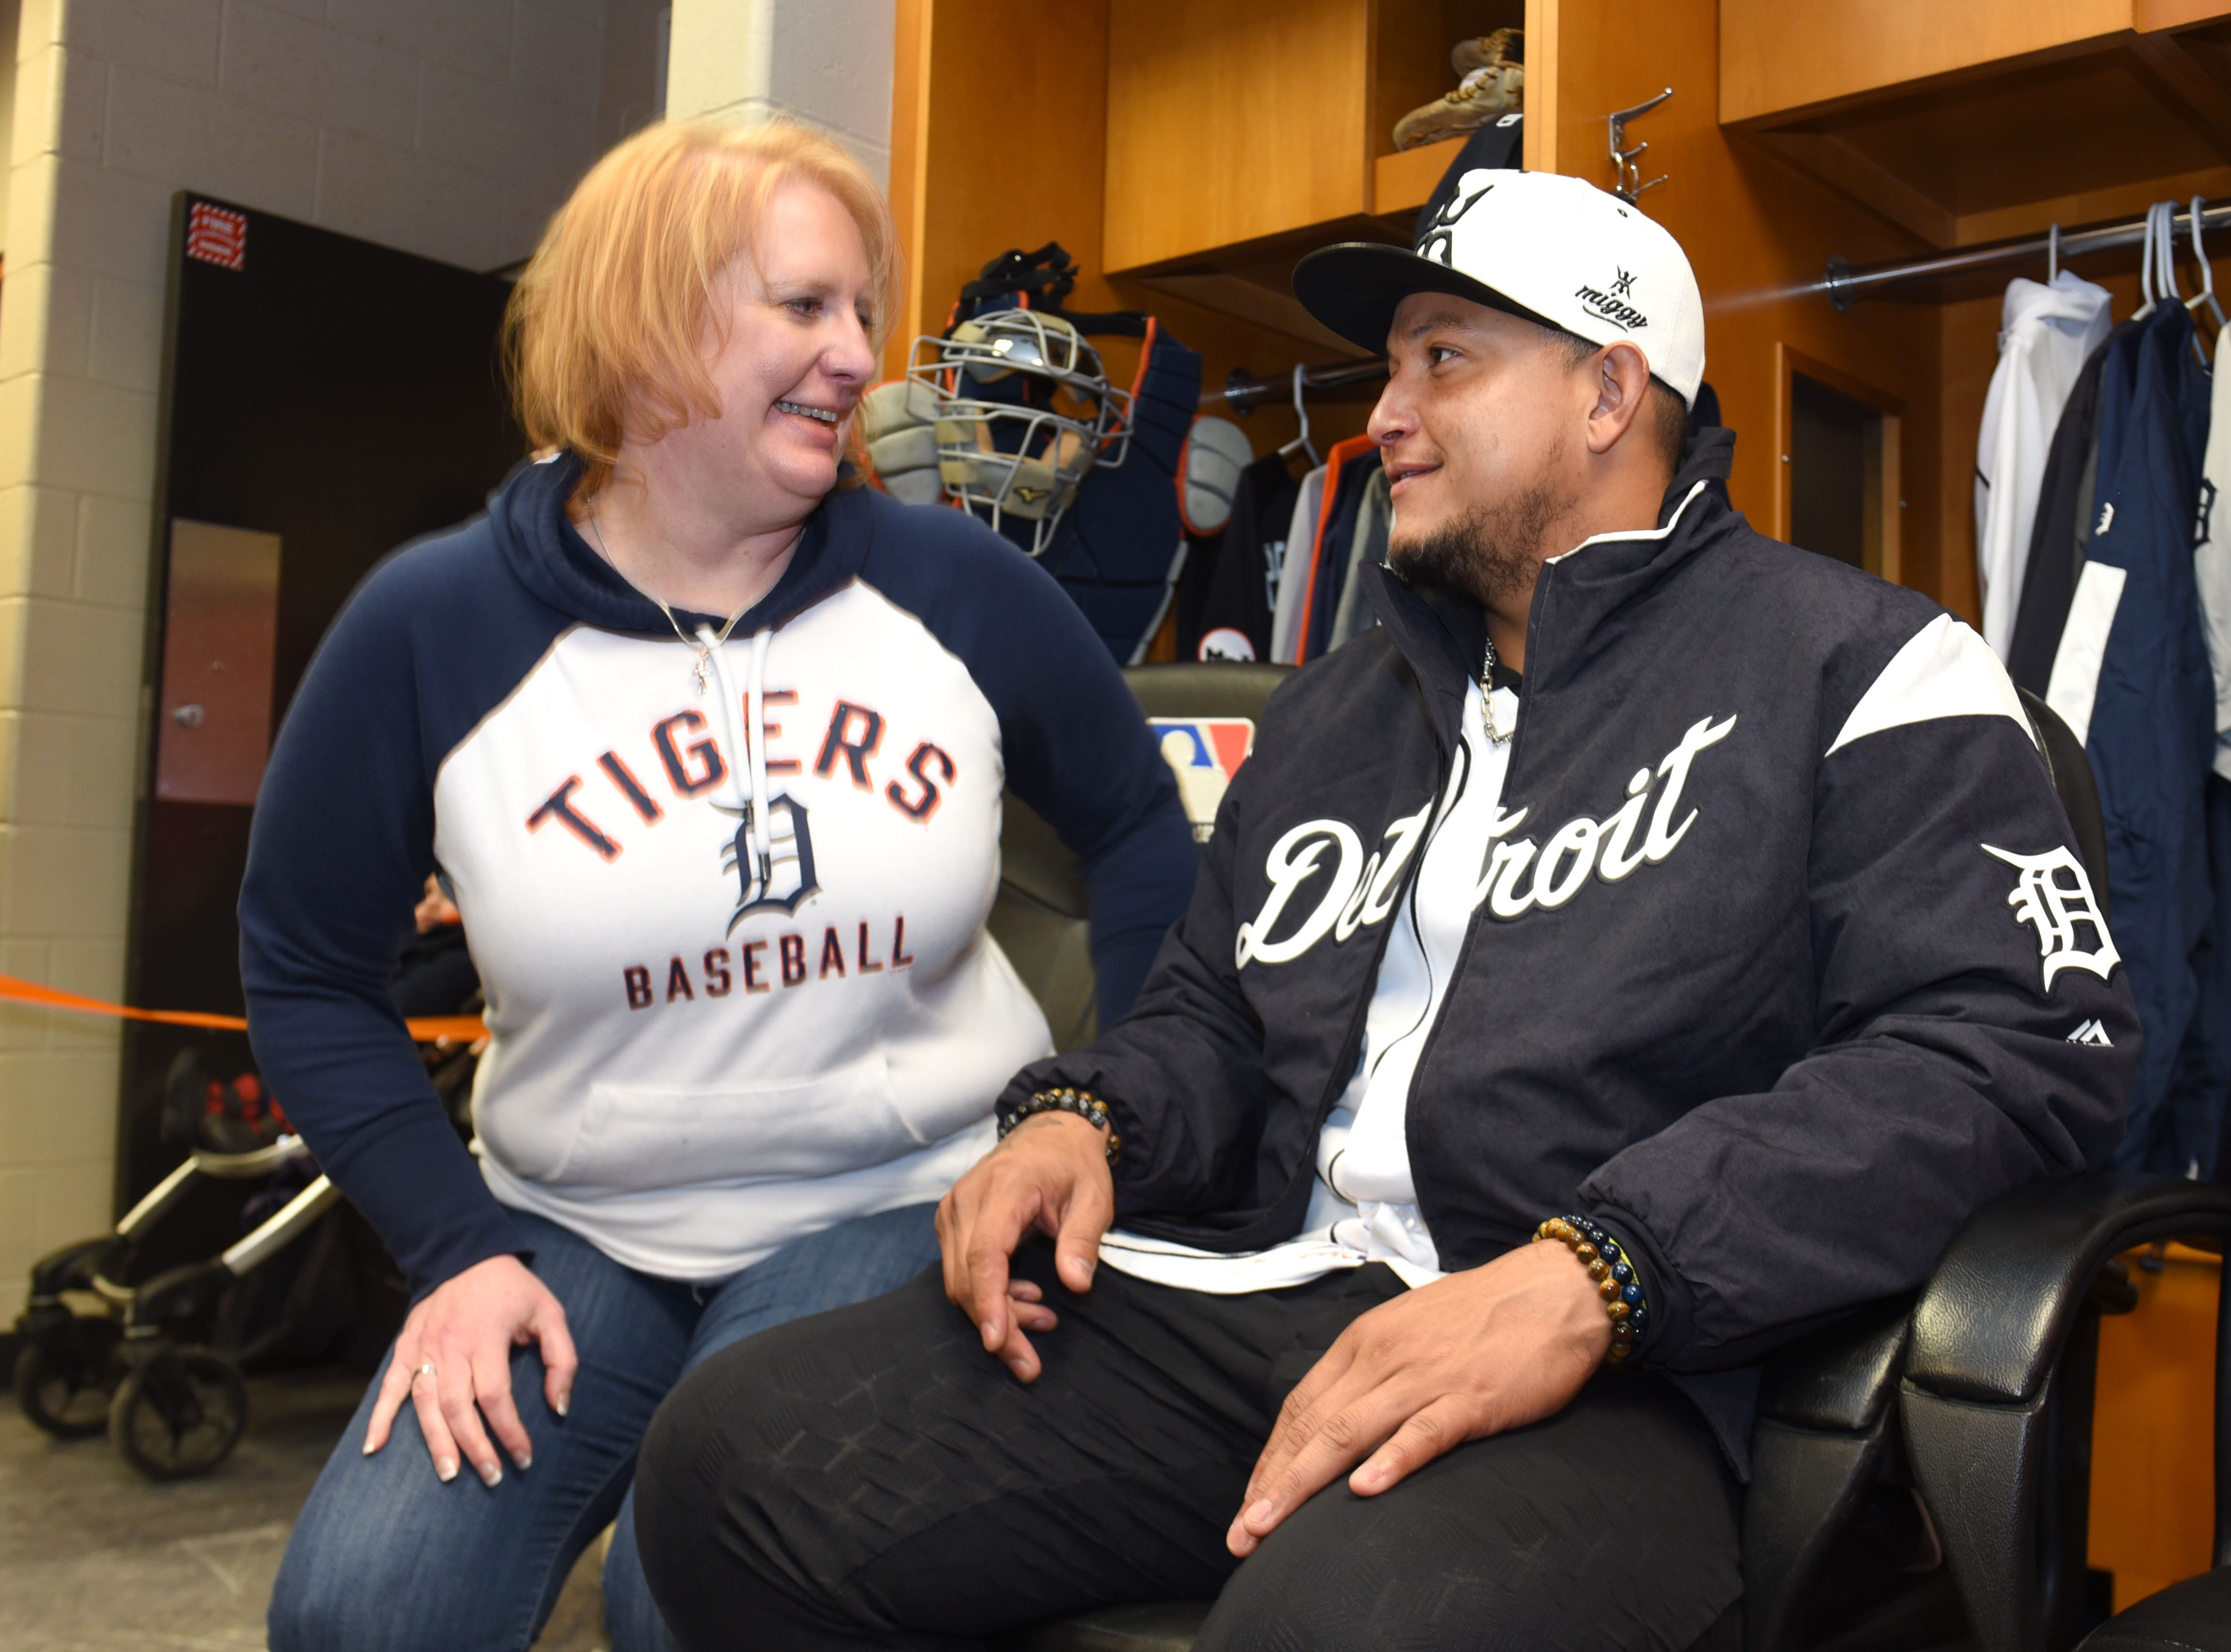 Kristen Moore of Lansing shares a moment with Detroit Tigers Miguel Cabrera in the players locker room at TigerFest on Saturday, January 26, 2019.